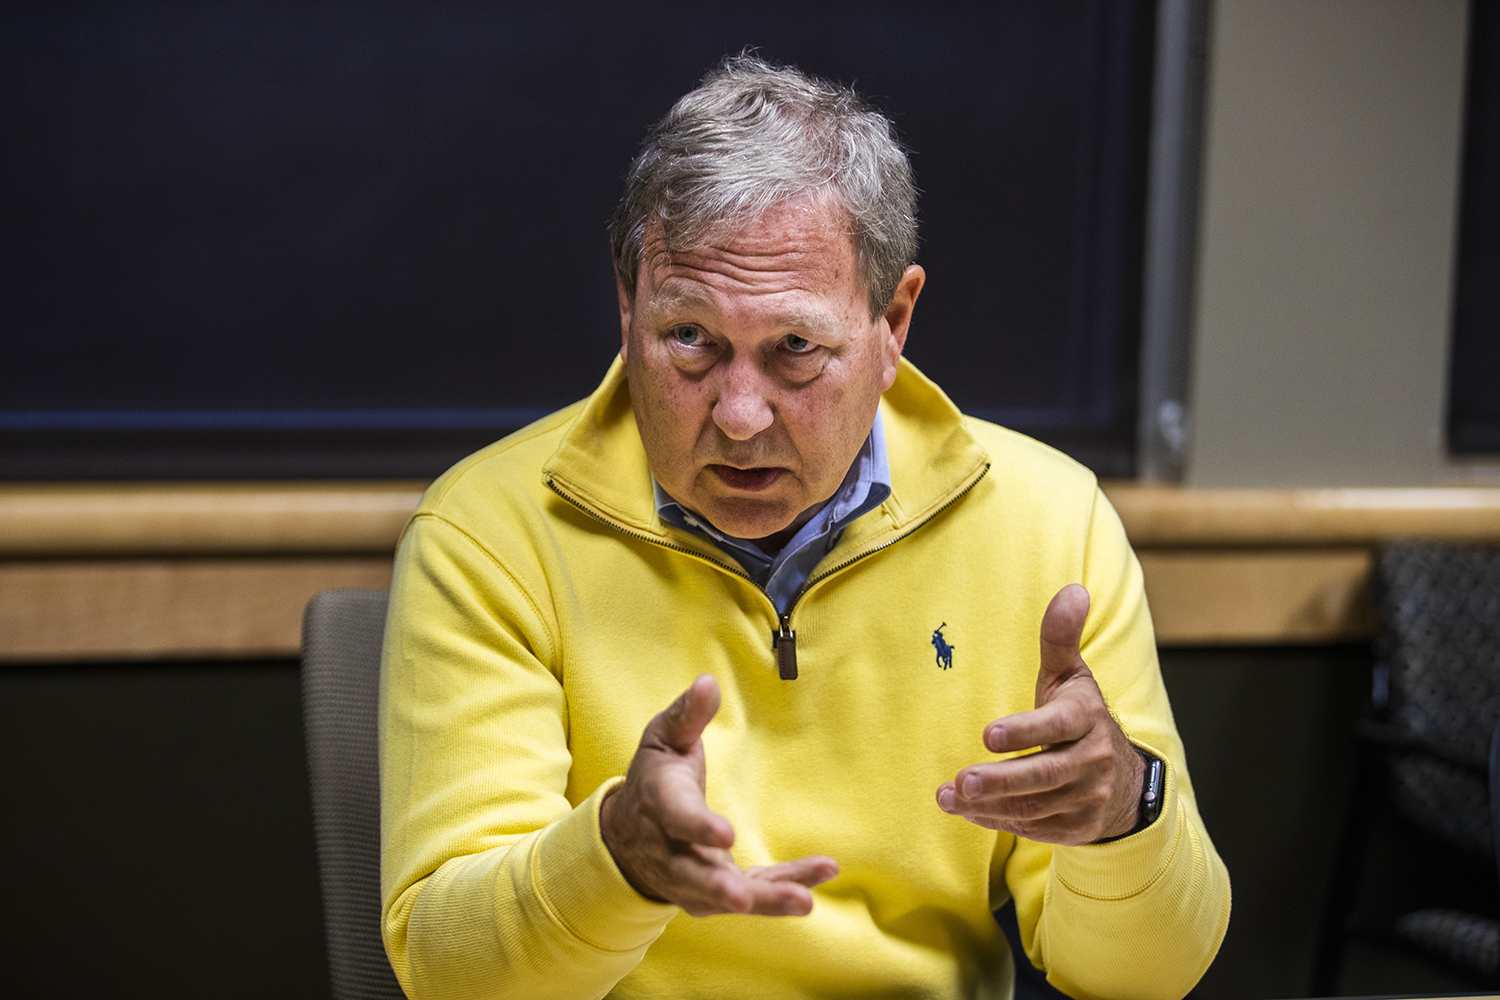 UI President Bruce Harreld answers questions during an interview with The Daily Iowan in the Adler Journalism Building on Monday, Dec. 9, 2019.